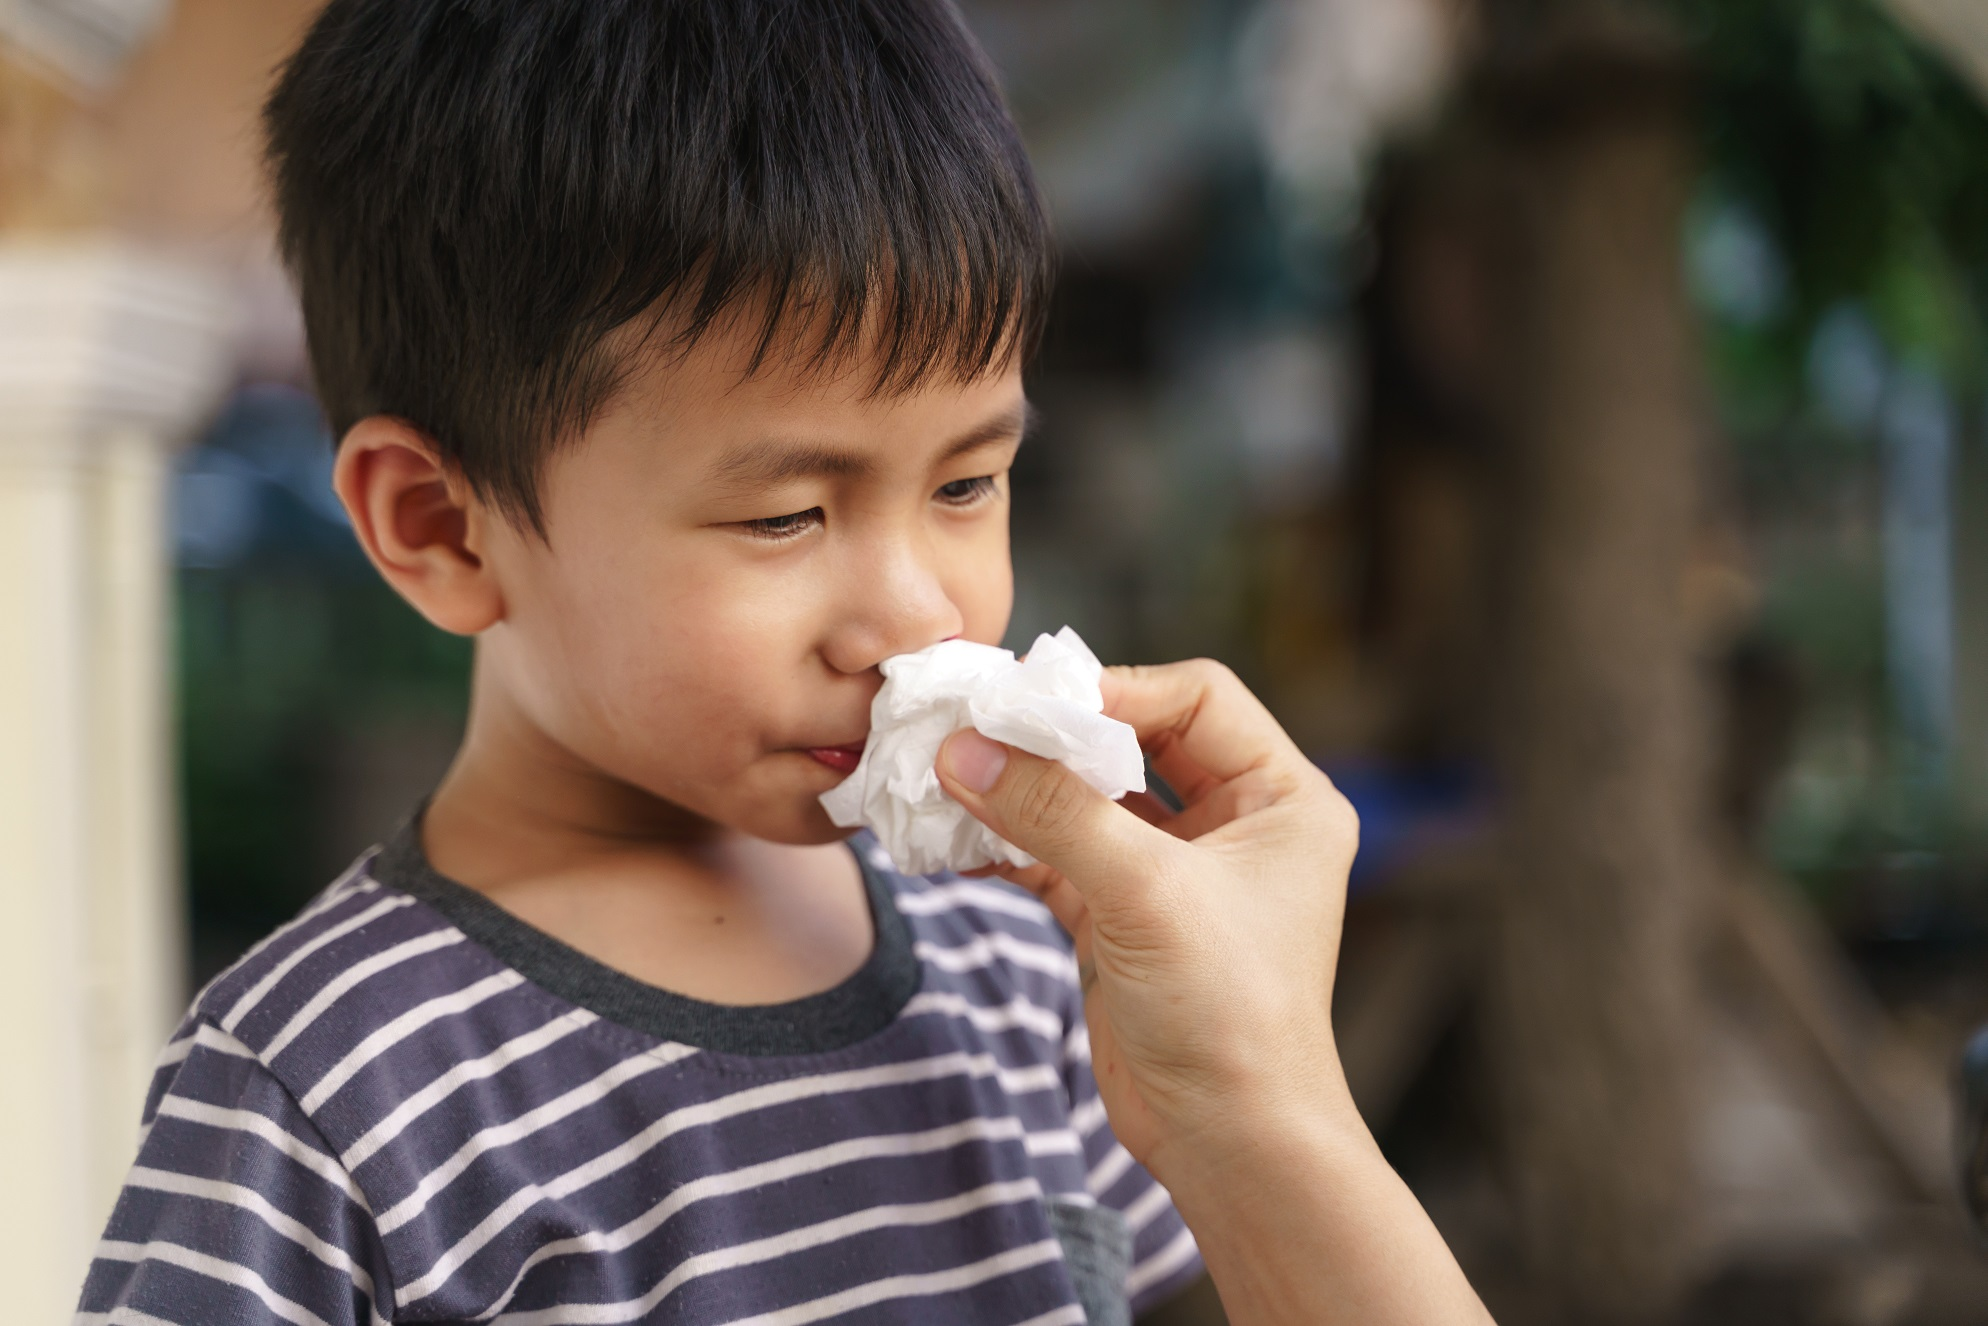 otolaryngologists near you can treat nose bleeds in your children